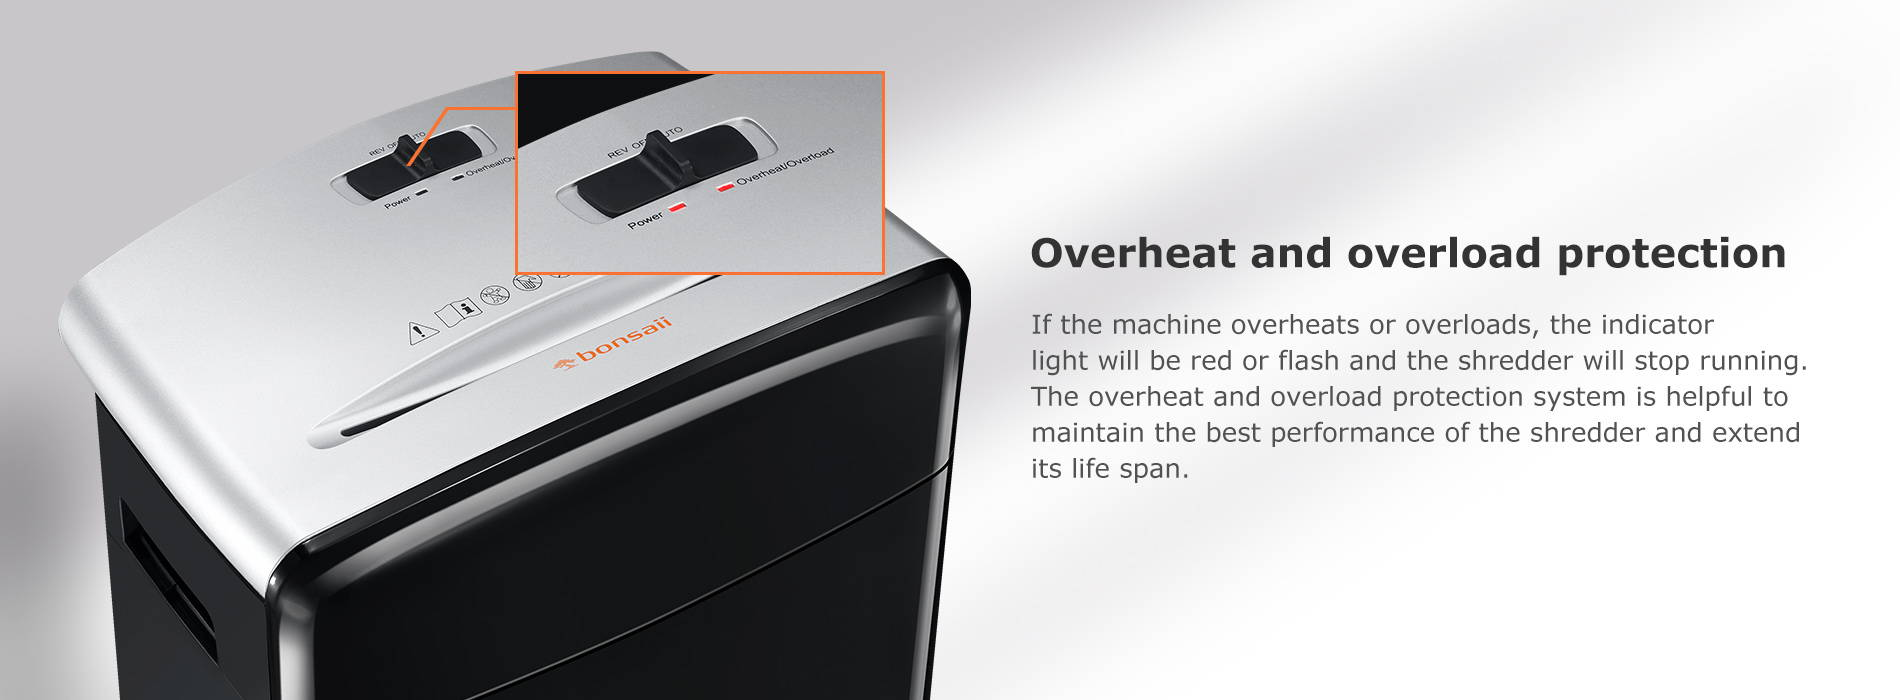 Overheat and overload protection  If the machine overheats or overloads, the indicator light will be red or flash and the shredder will stop running. The overheat and overload protection system is helpful to maintain the best performance of the shredder and extend its life span.